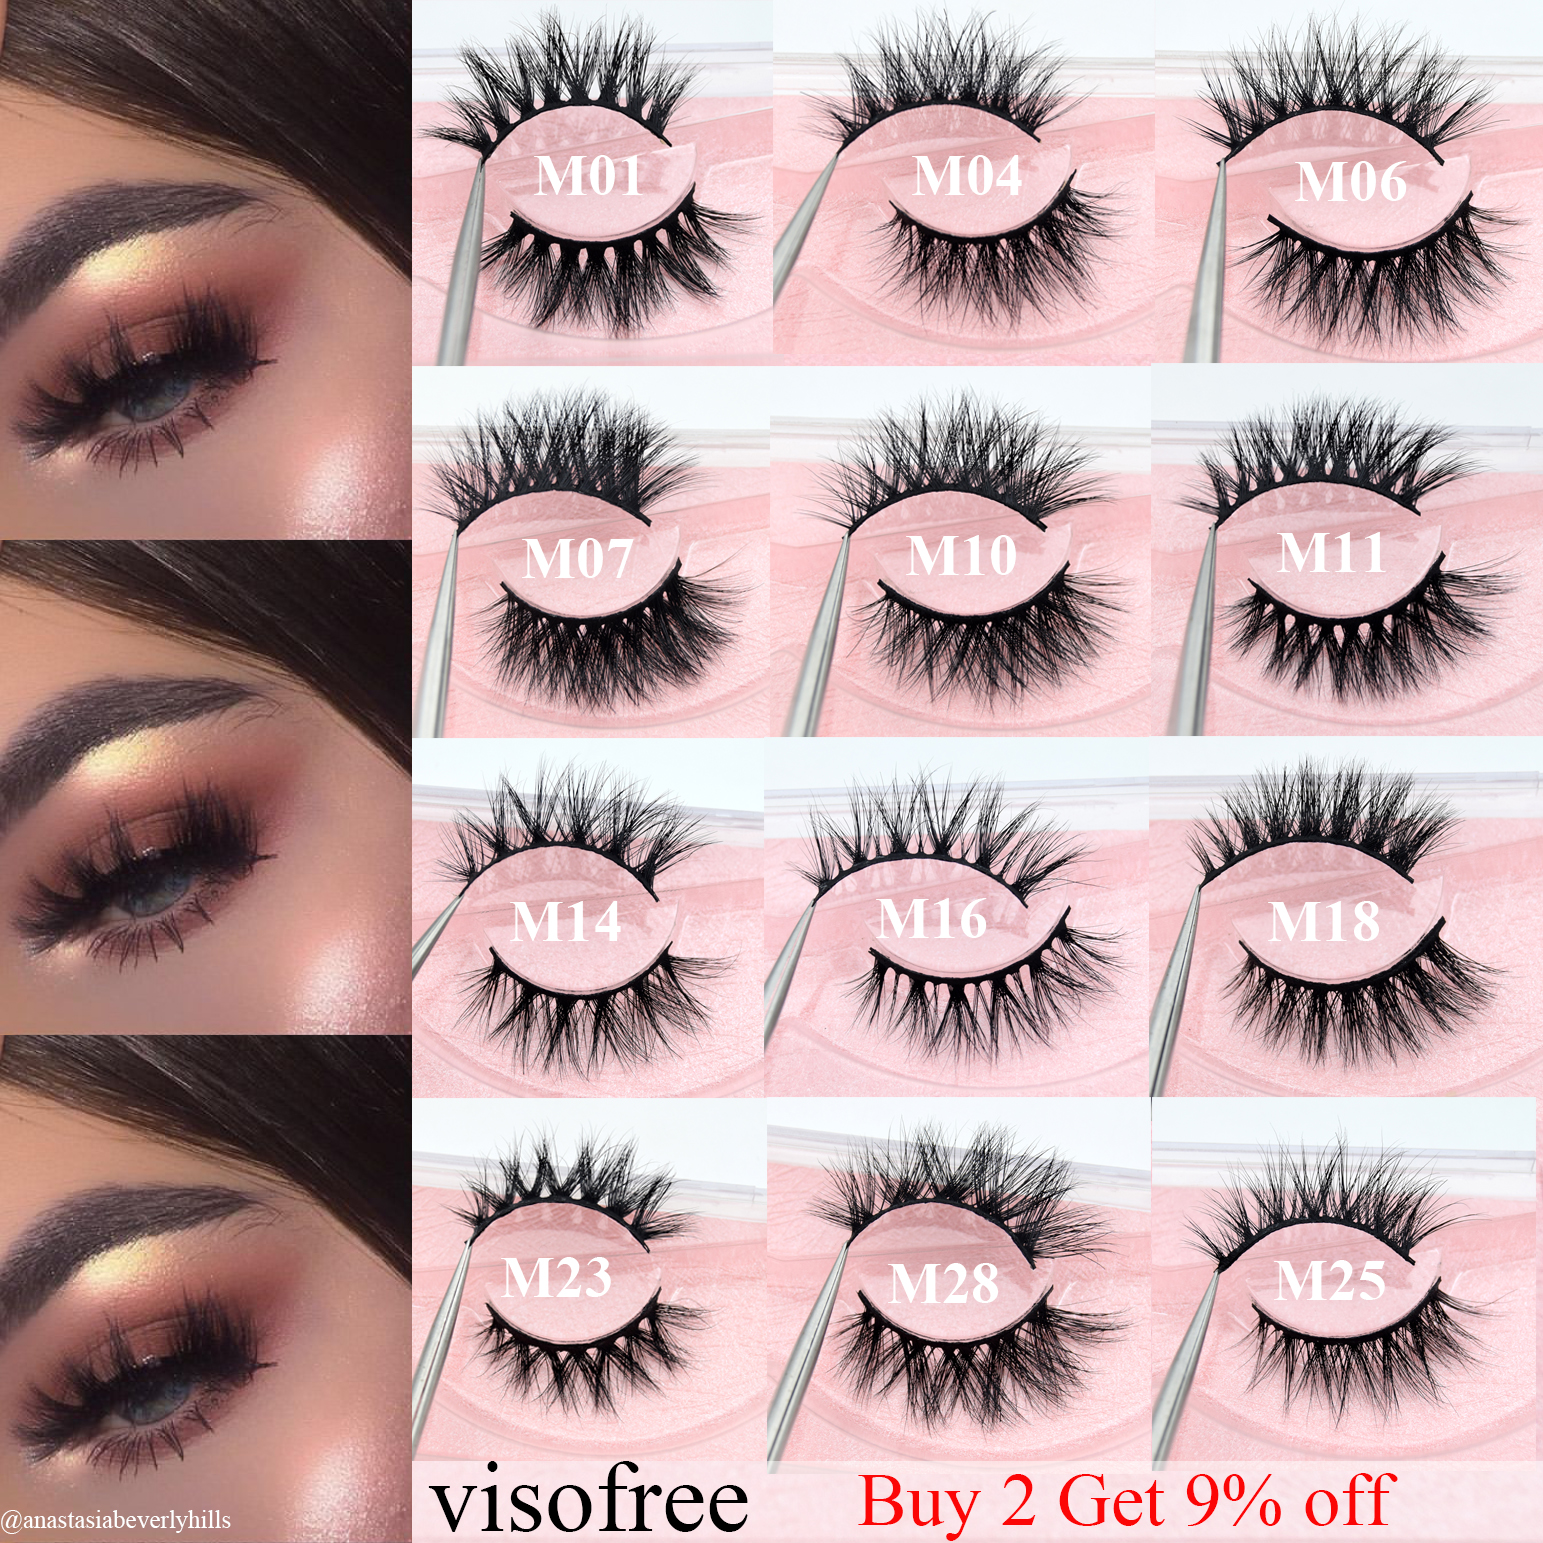 Visofree Lashes Natural False Eyelashes Fake Lashes Long Makeup 3D Mink Lashes Eyelash Extension Mink Eyelashes Beauty 43 Styles